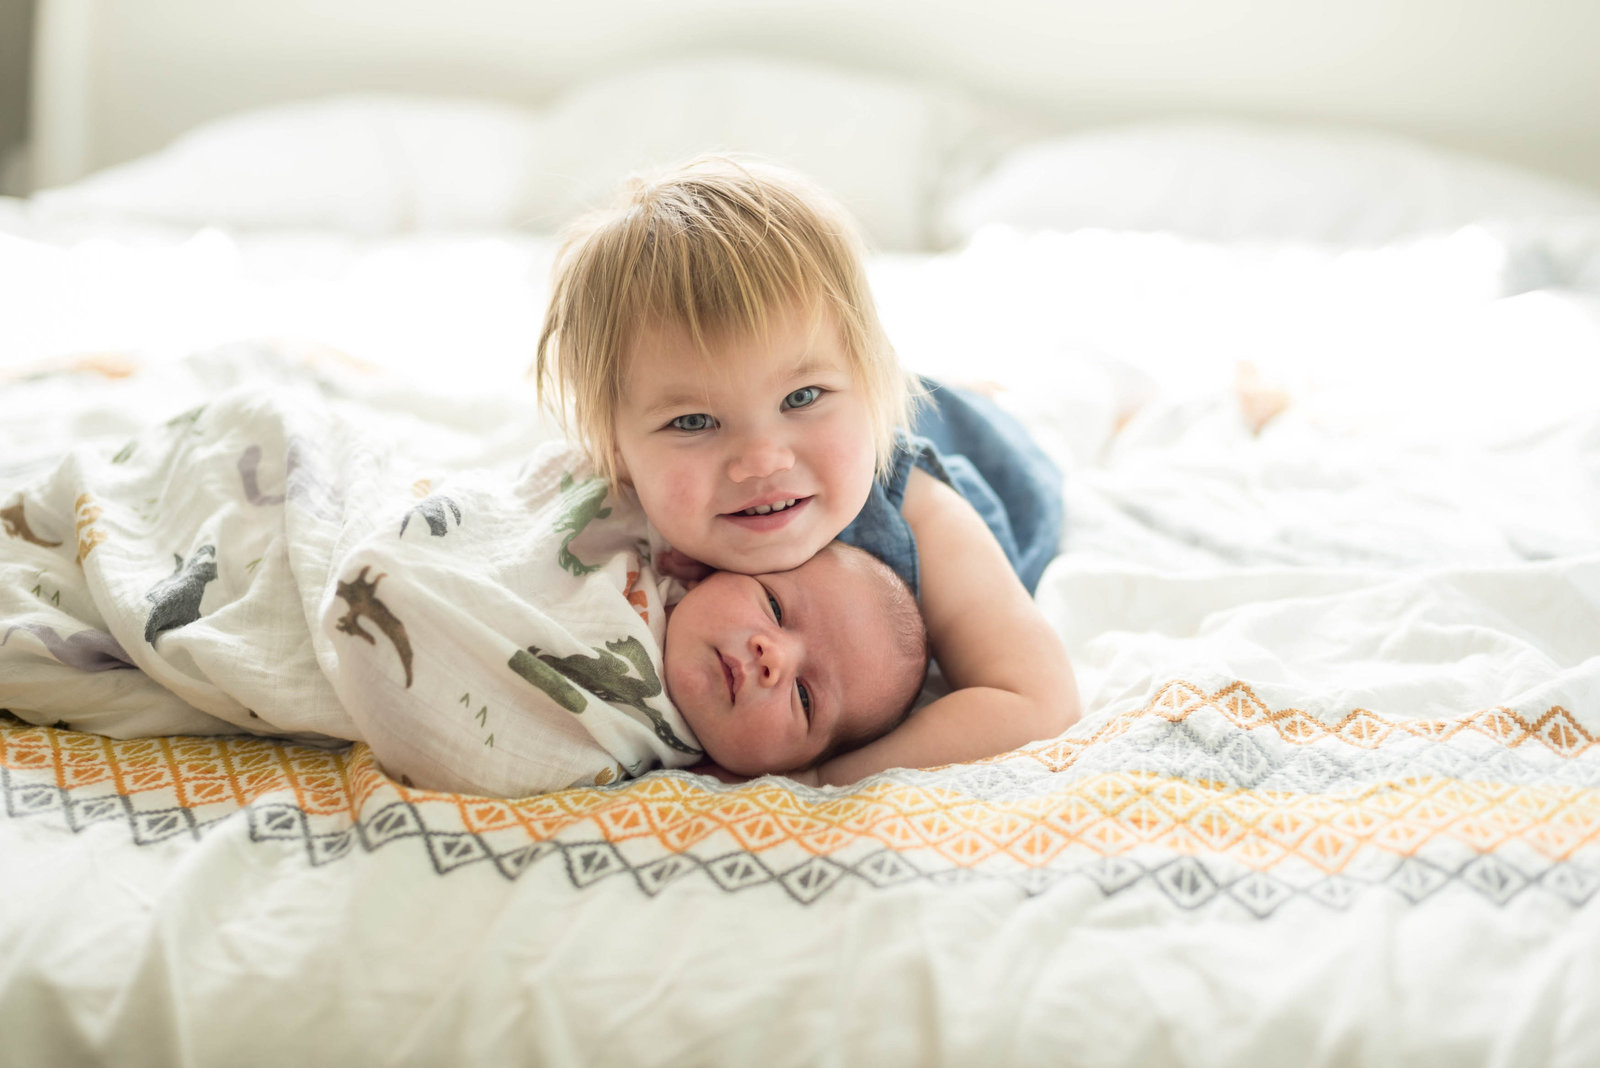 Boston-Newborn-Photographer-Lifestyle-Documentary-Home-Styled-Session-384